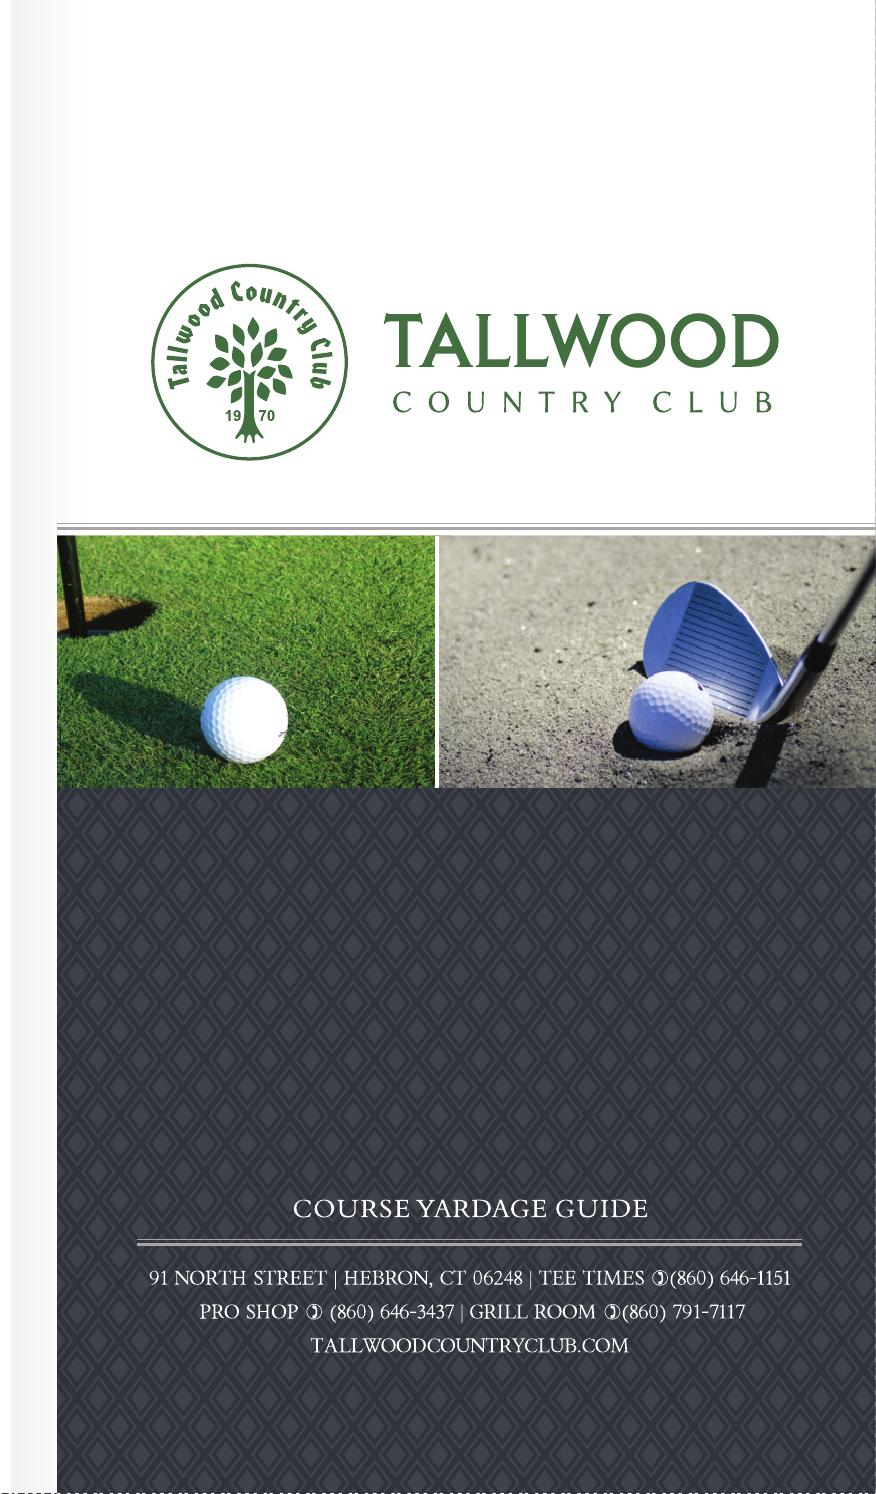 Tallwood country club by bench craft company issuu for Bench craft company fraudsters